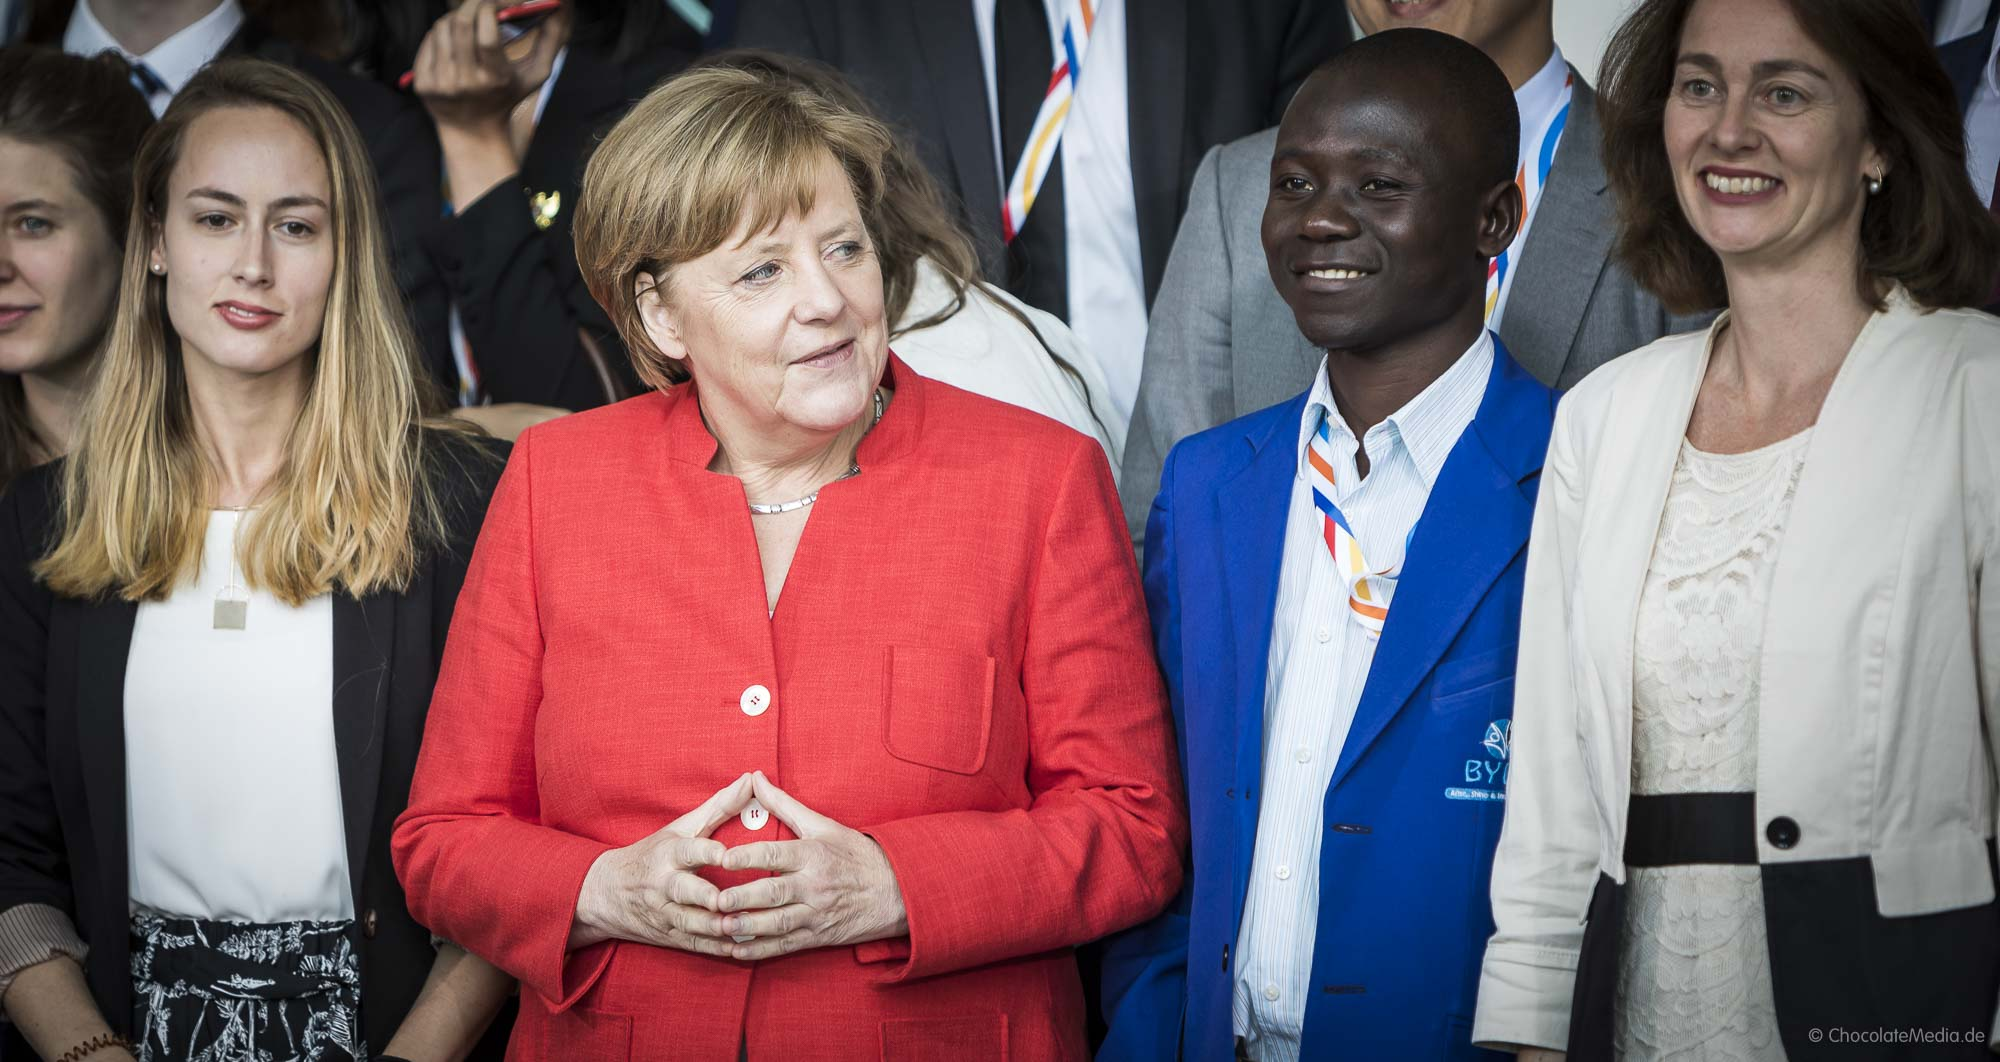 Angela Merkel with G20 Youth Representatives at Kanzleramt. (Berlin 2017)